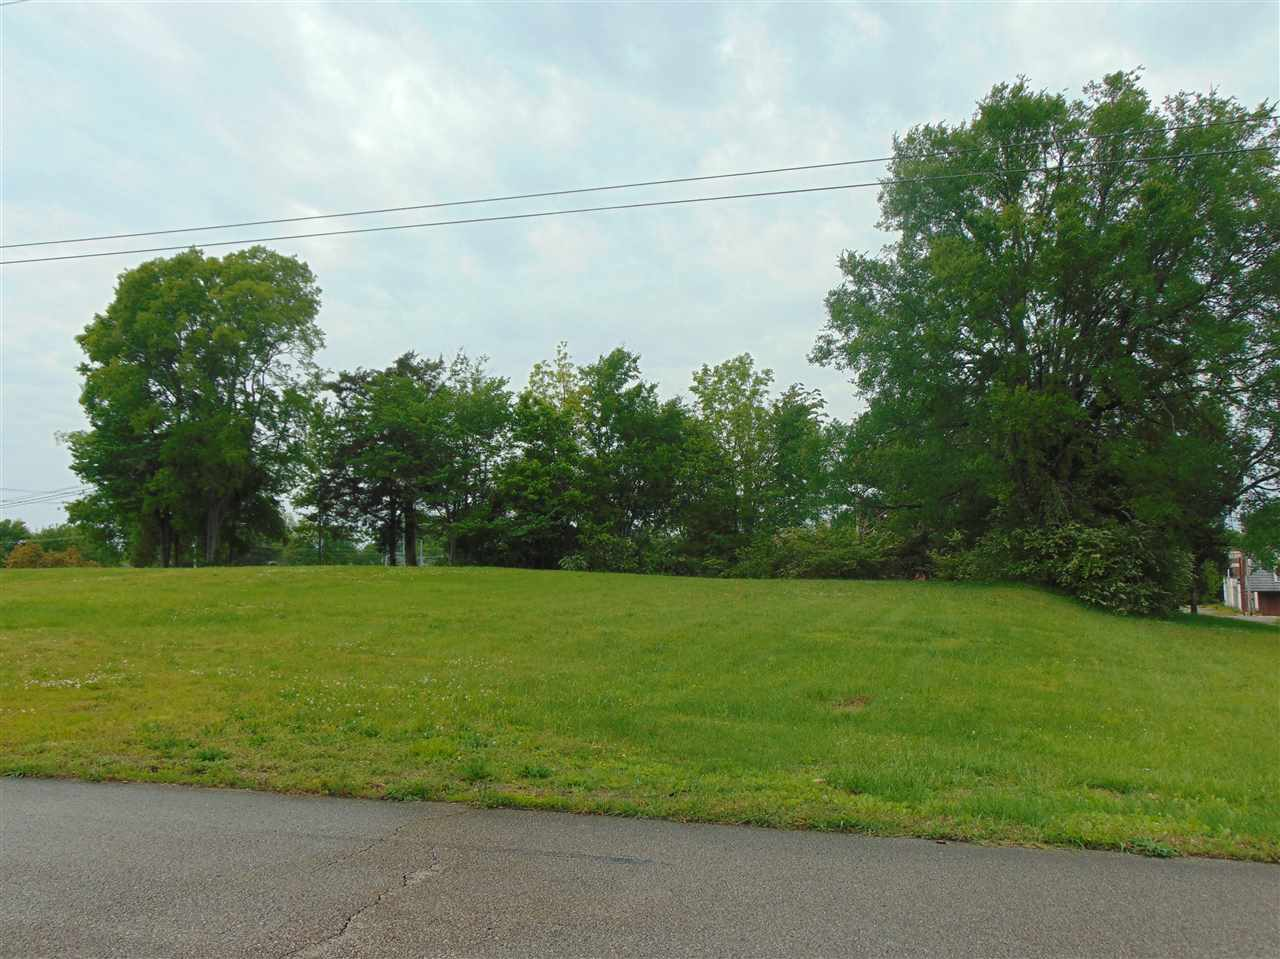 0 w 3rd st Property Photo - parsons, TN real estate listing